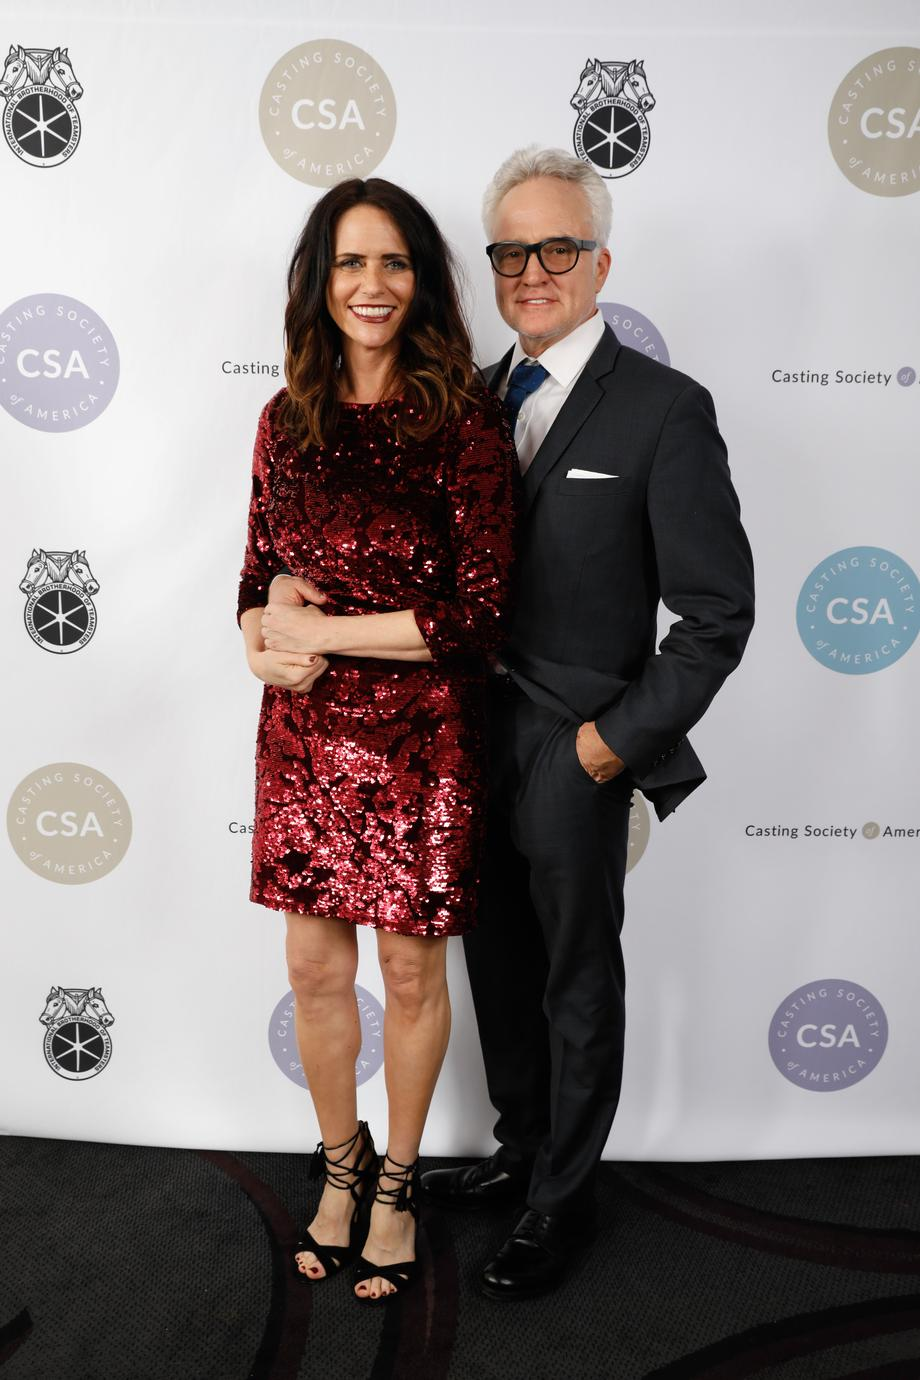 Presenters Amy Landecker and Bradley Whitford